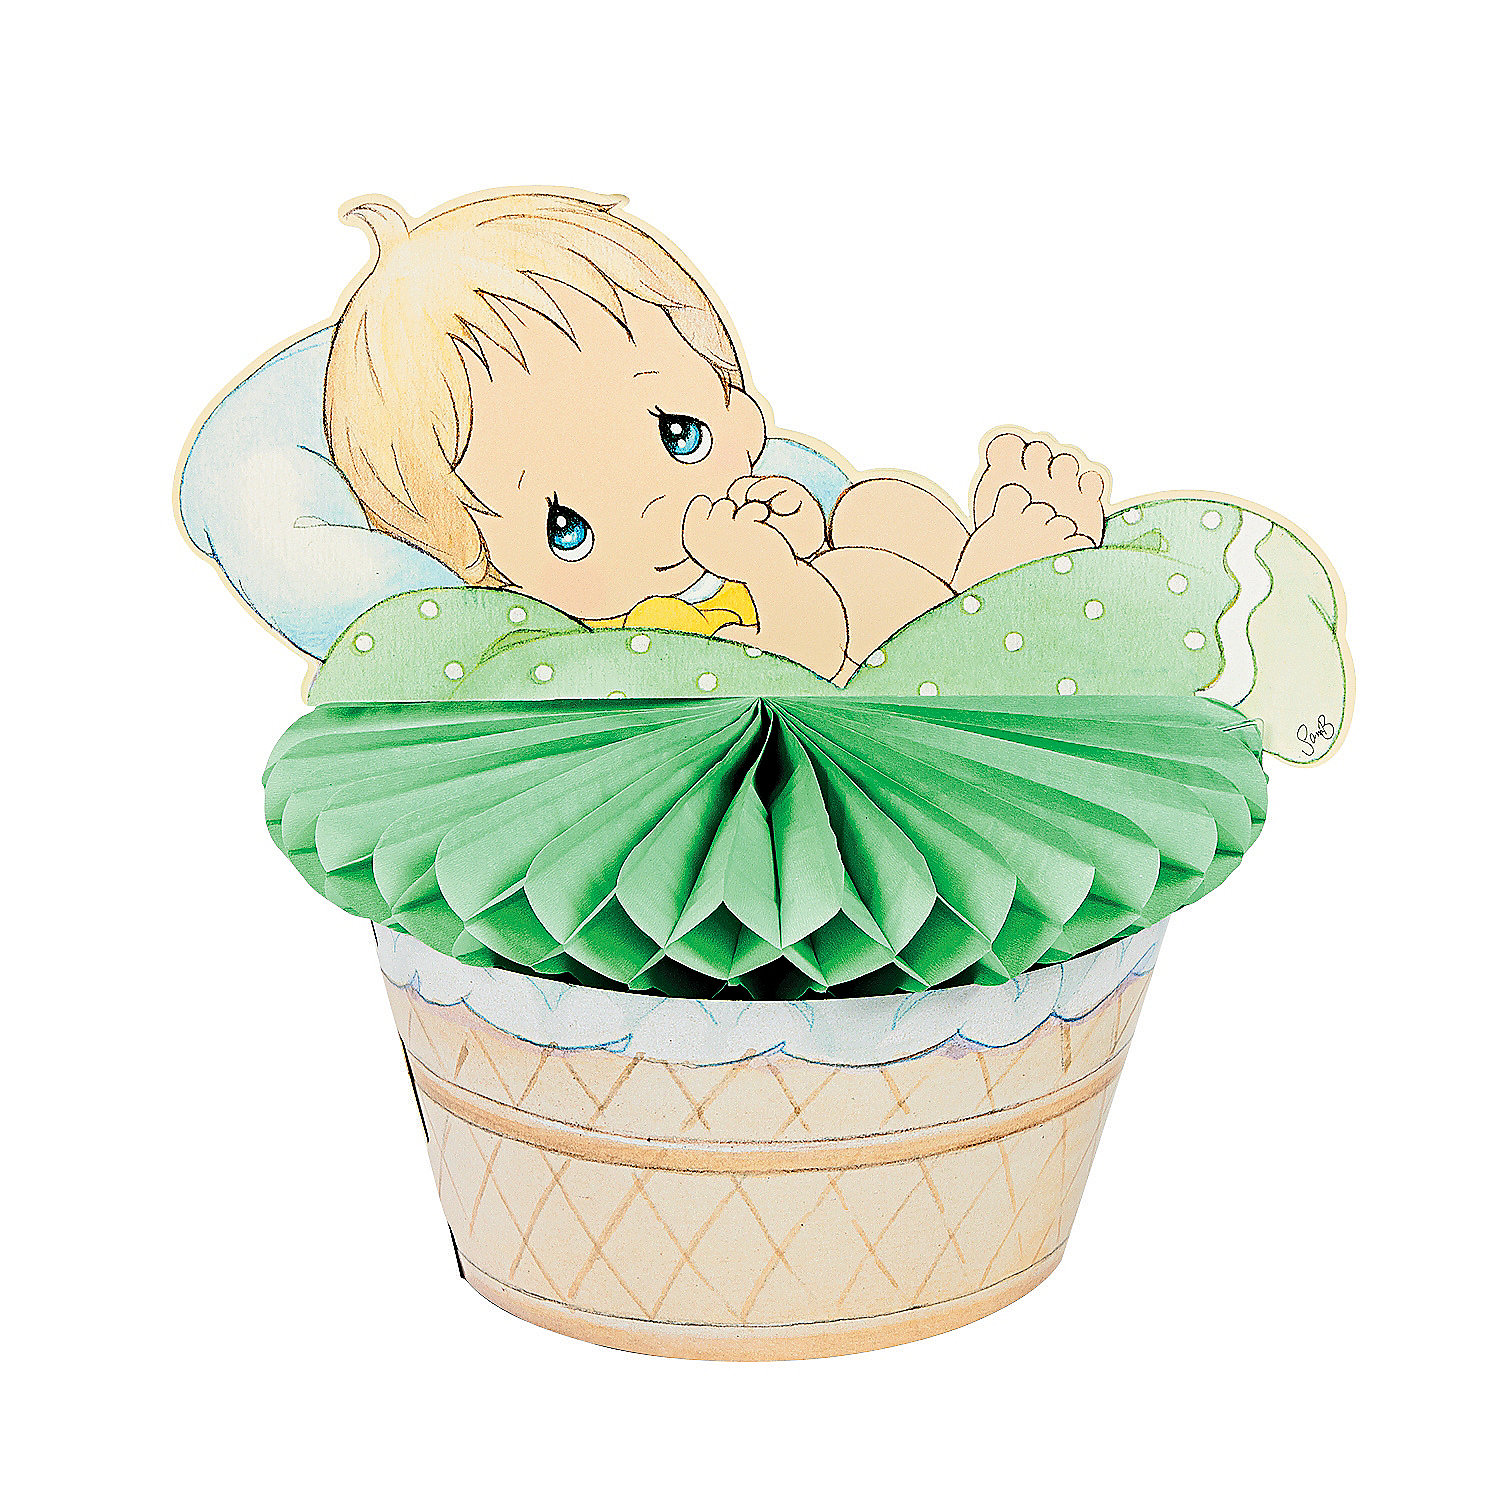 Precious Moments Baby Shower Party Supplies: Precious Moments® Baby Shower Centerpiece